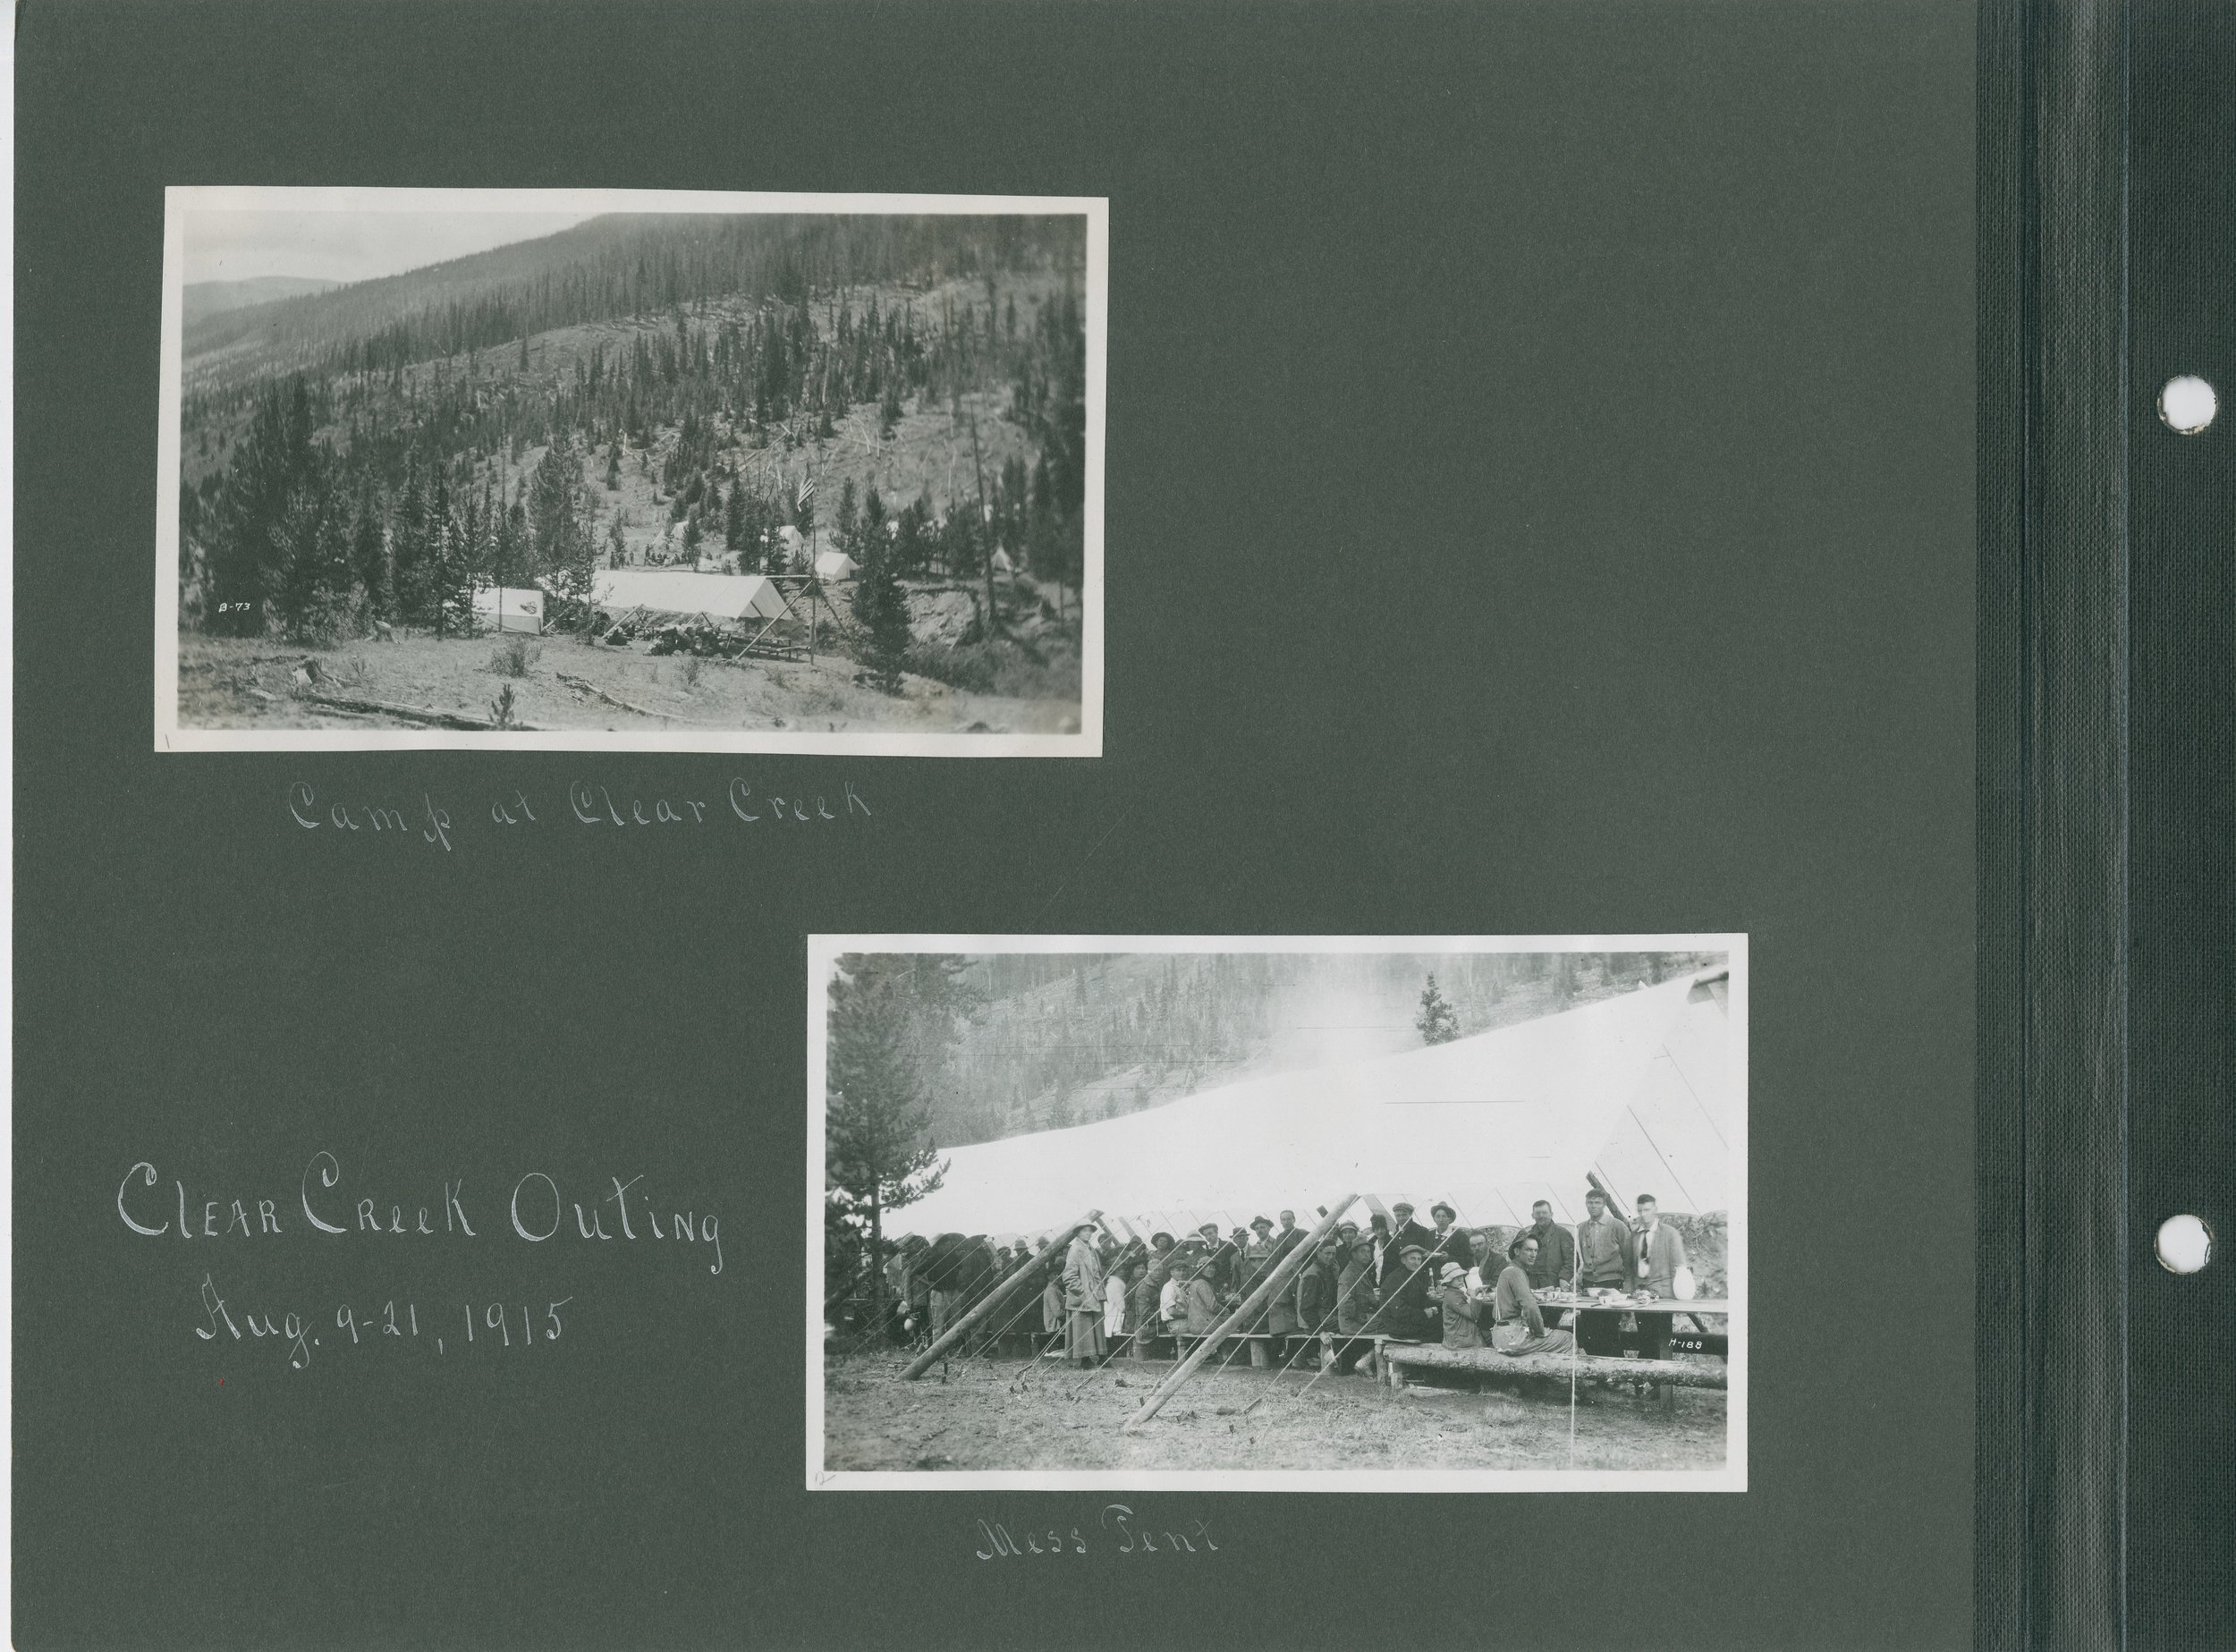 Clear Creek Outing, Aug. 9-21, 1915